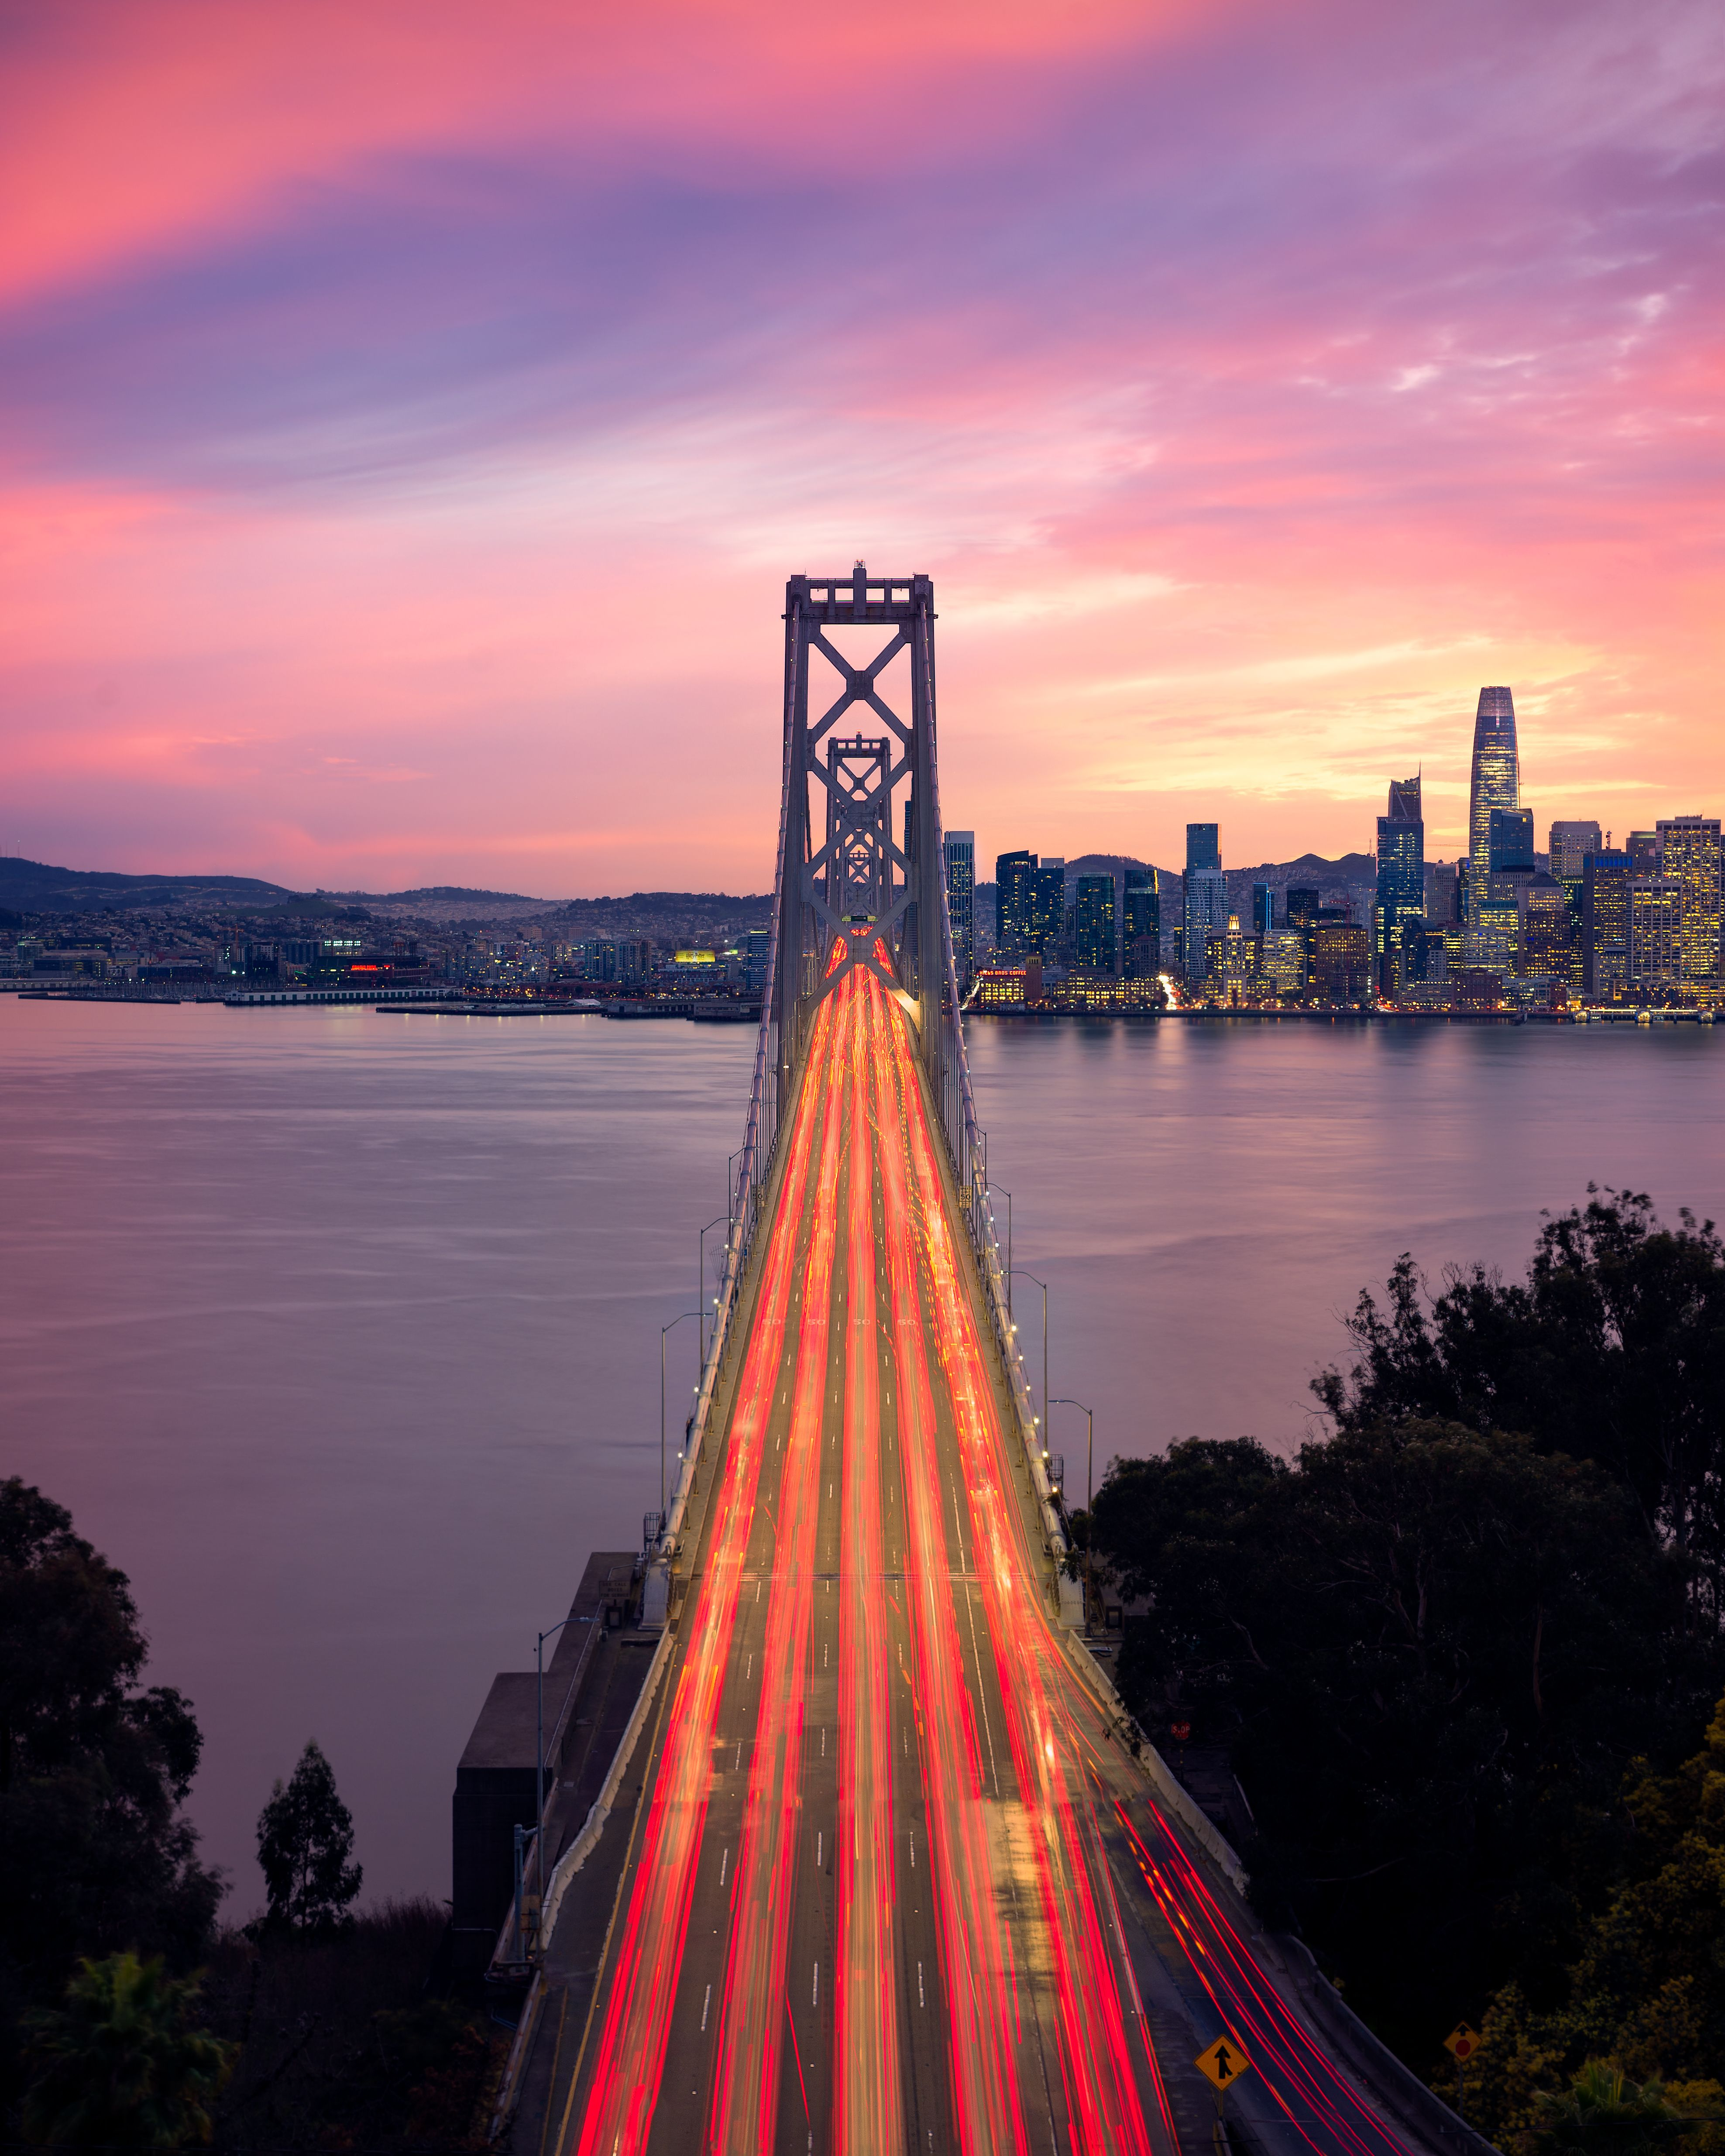 Approaching The City By The Bay (San Francisco) During A